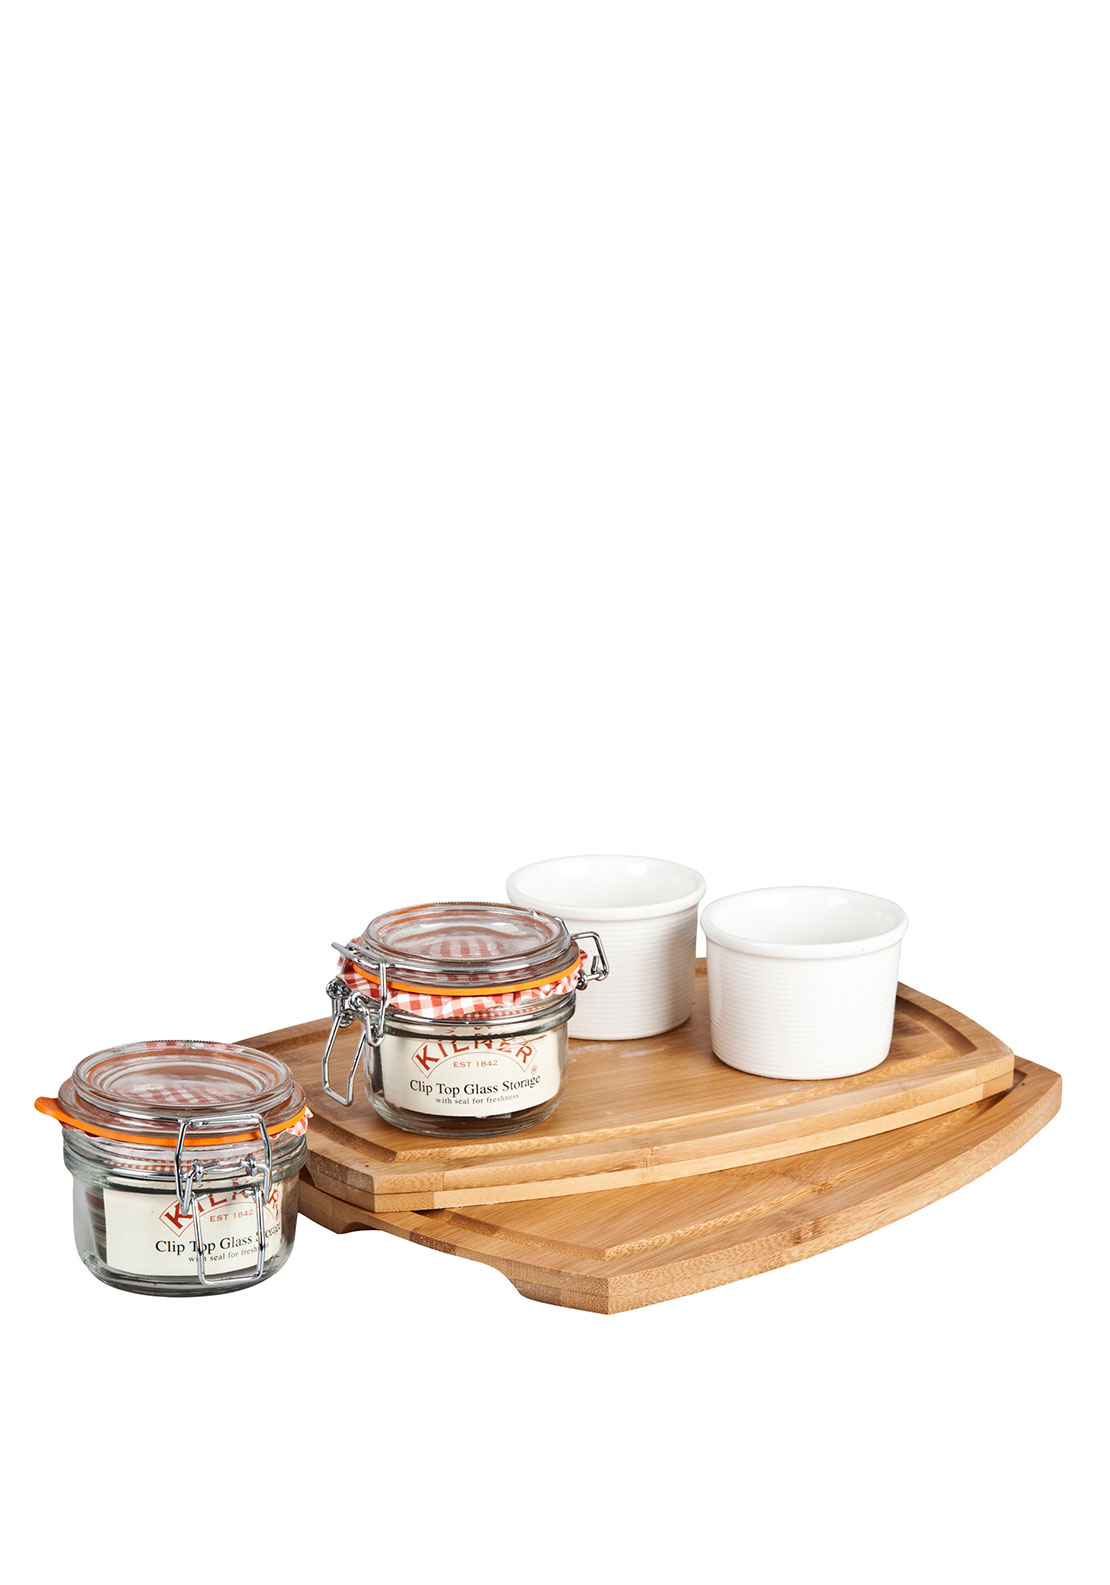 Denby Gastro James Martin Two 3 Piece Serving Kits